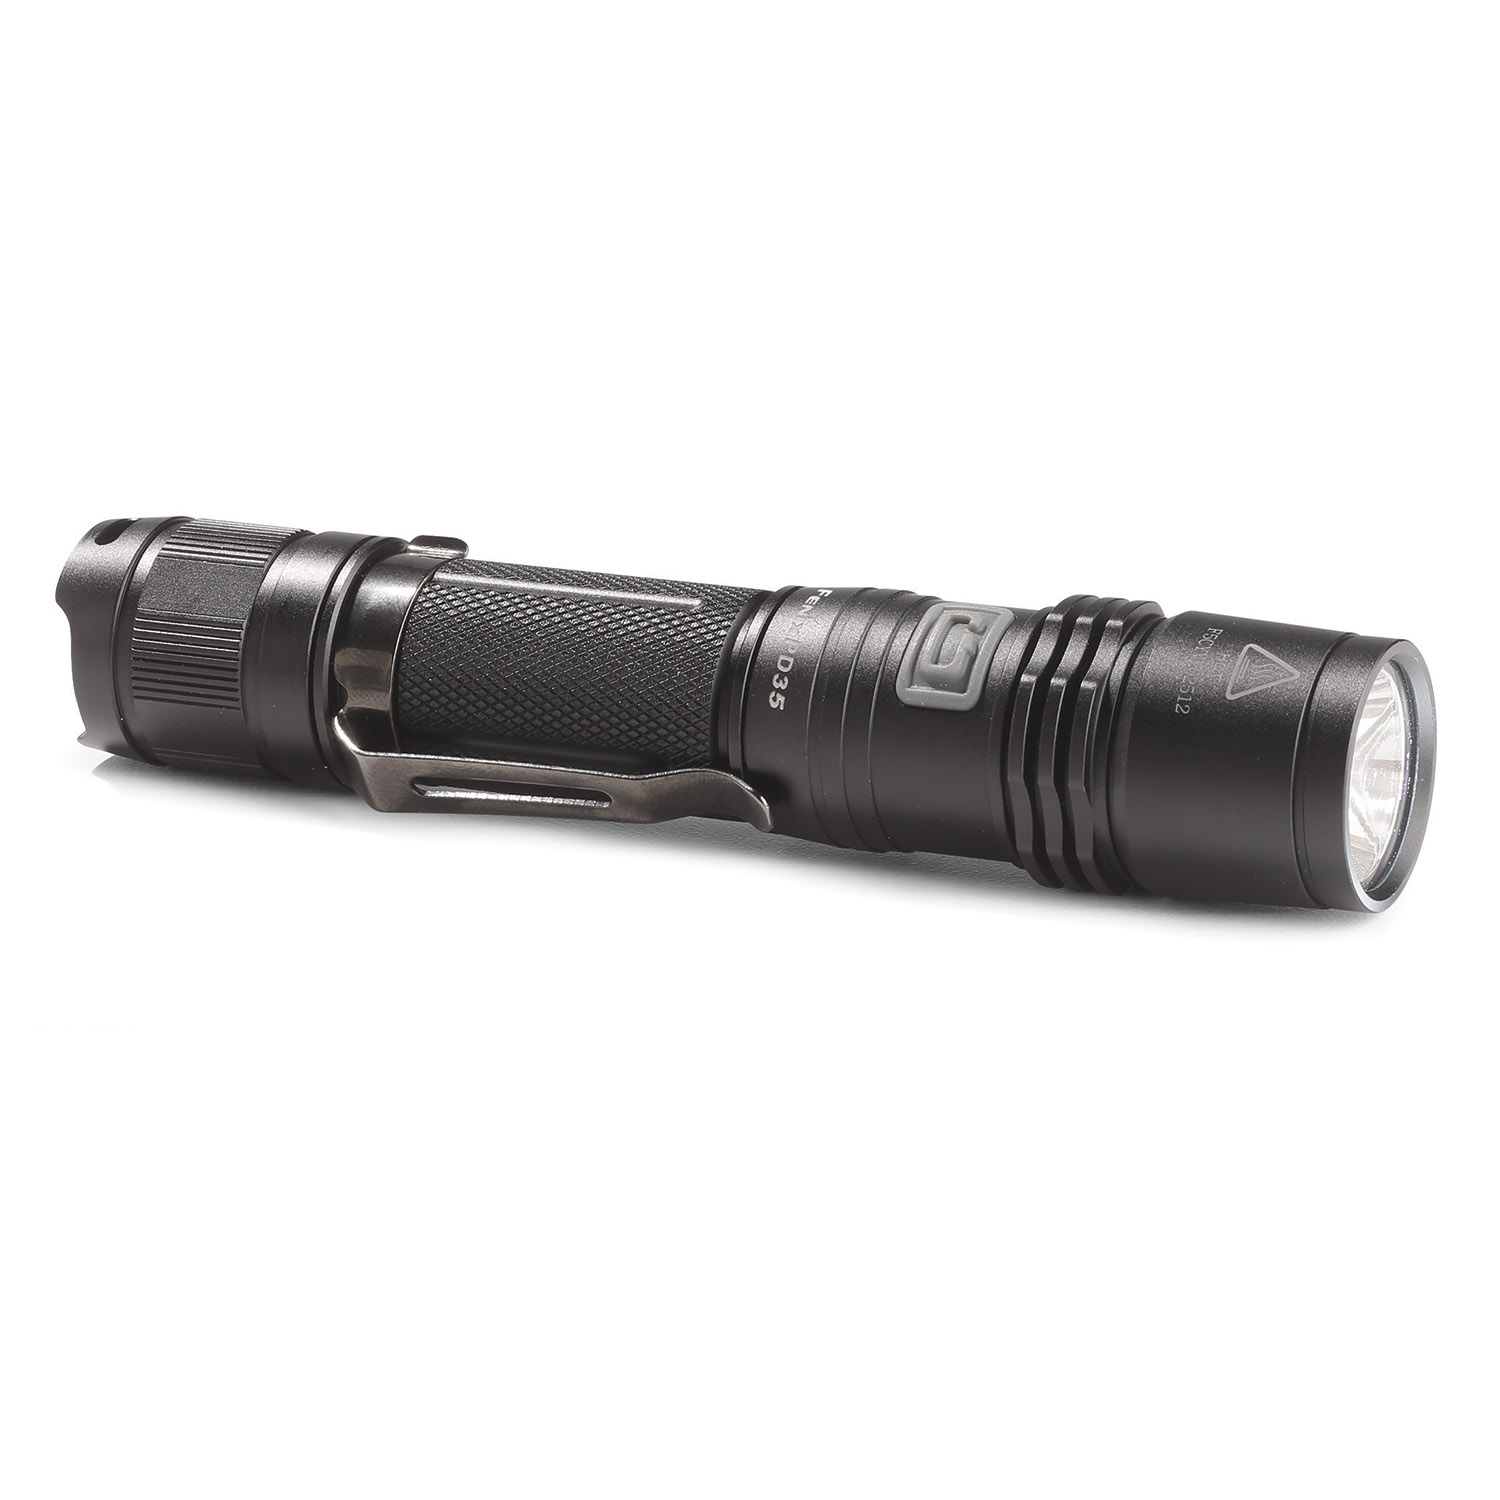 Fenix PD 35 Flashlight